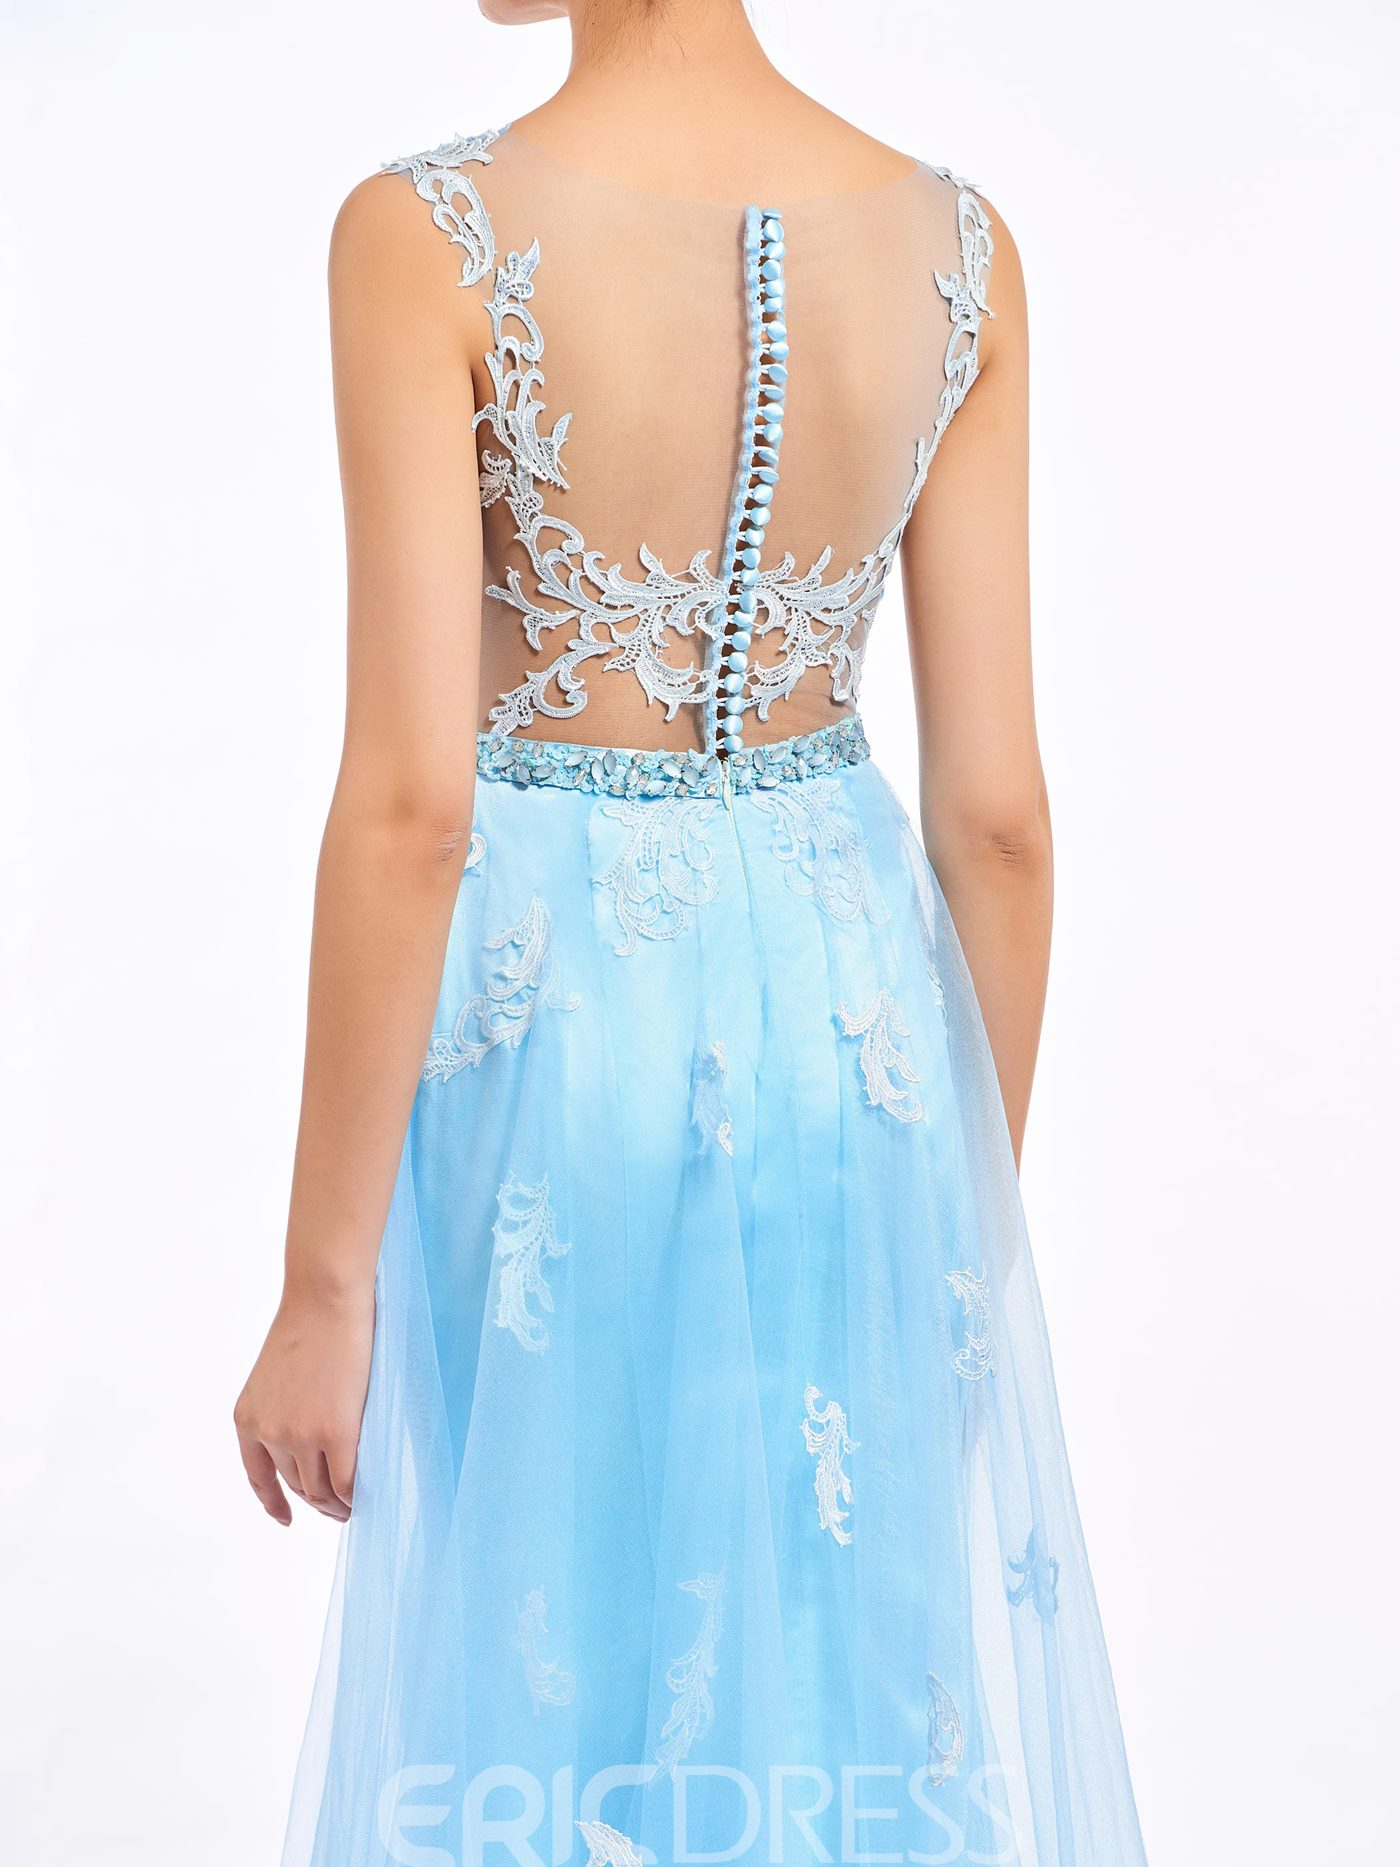 Ericdress A-Line Bateau Appliques Button Lace Sashes Prom Dress